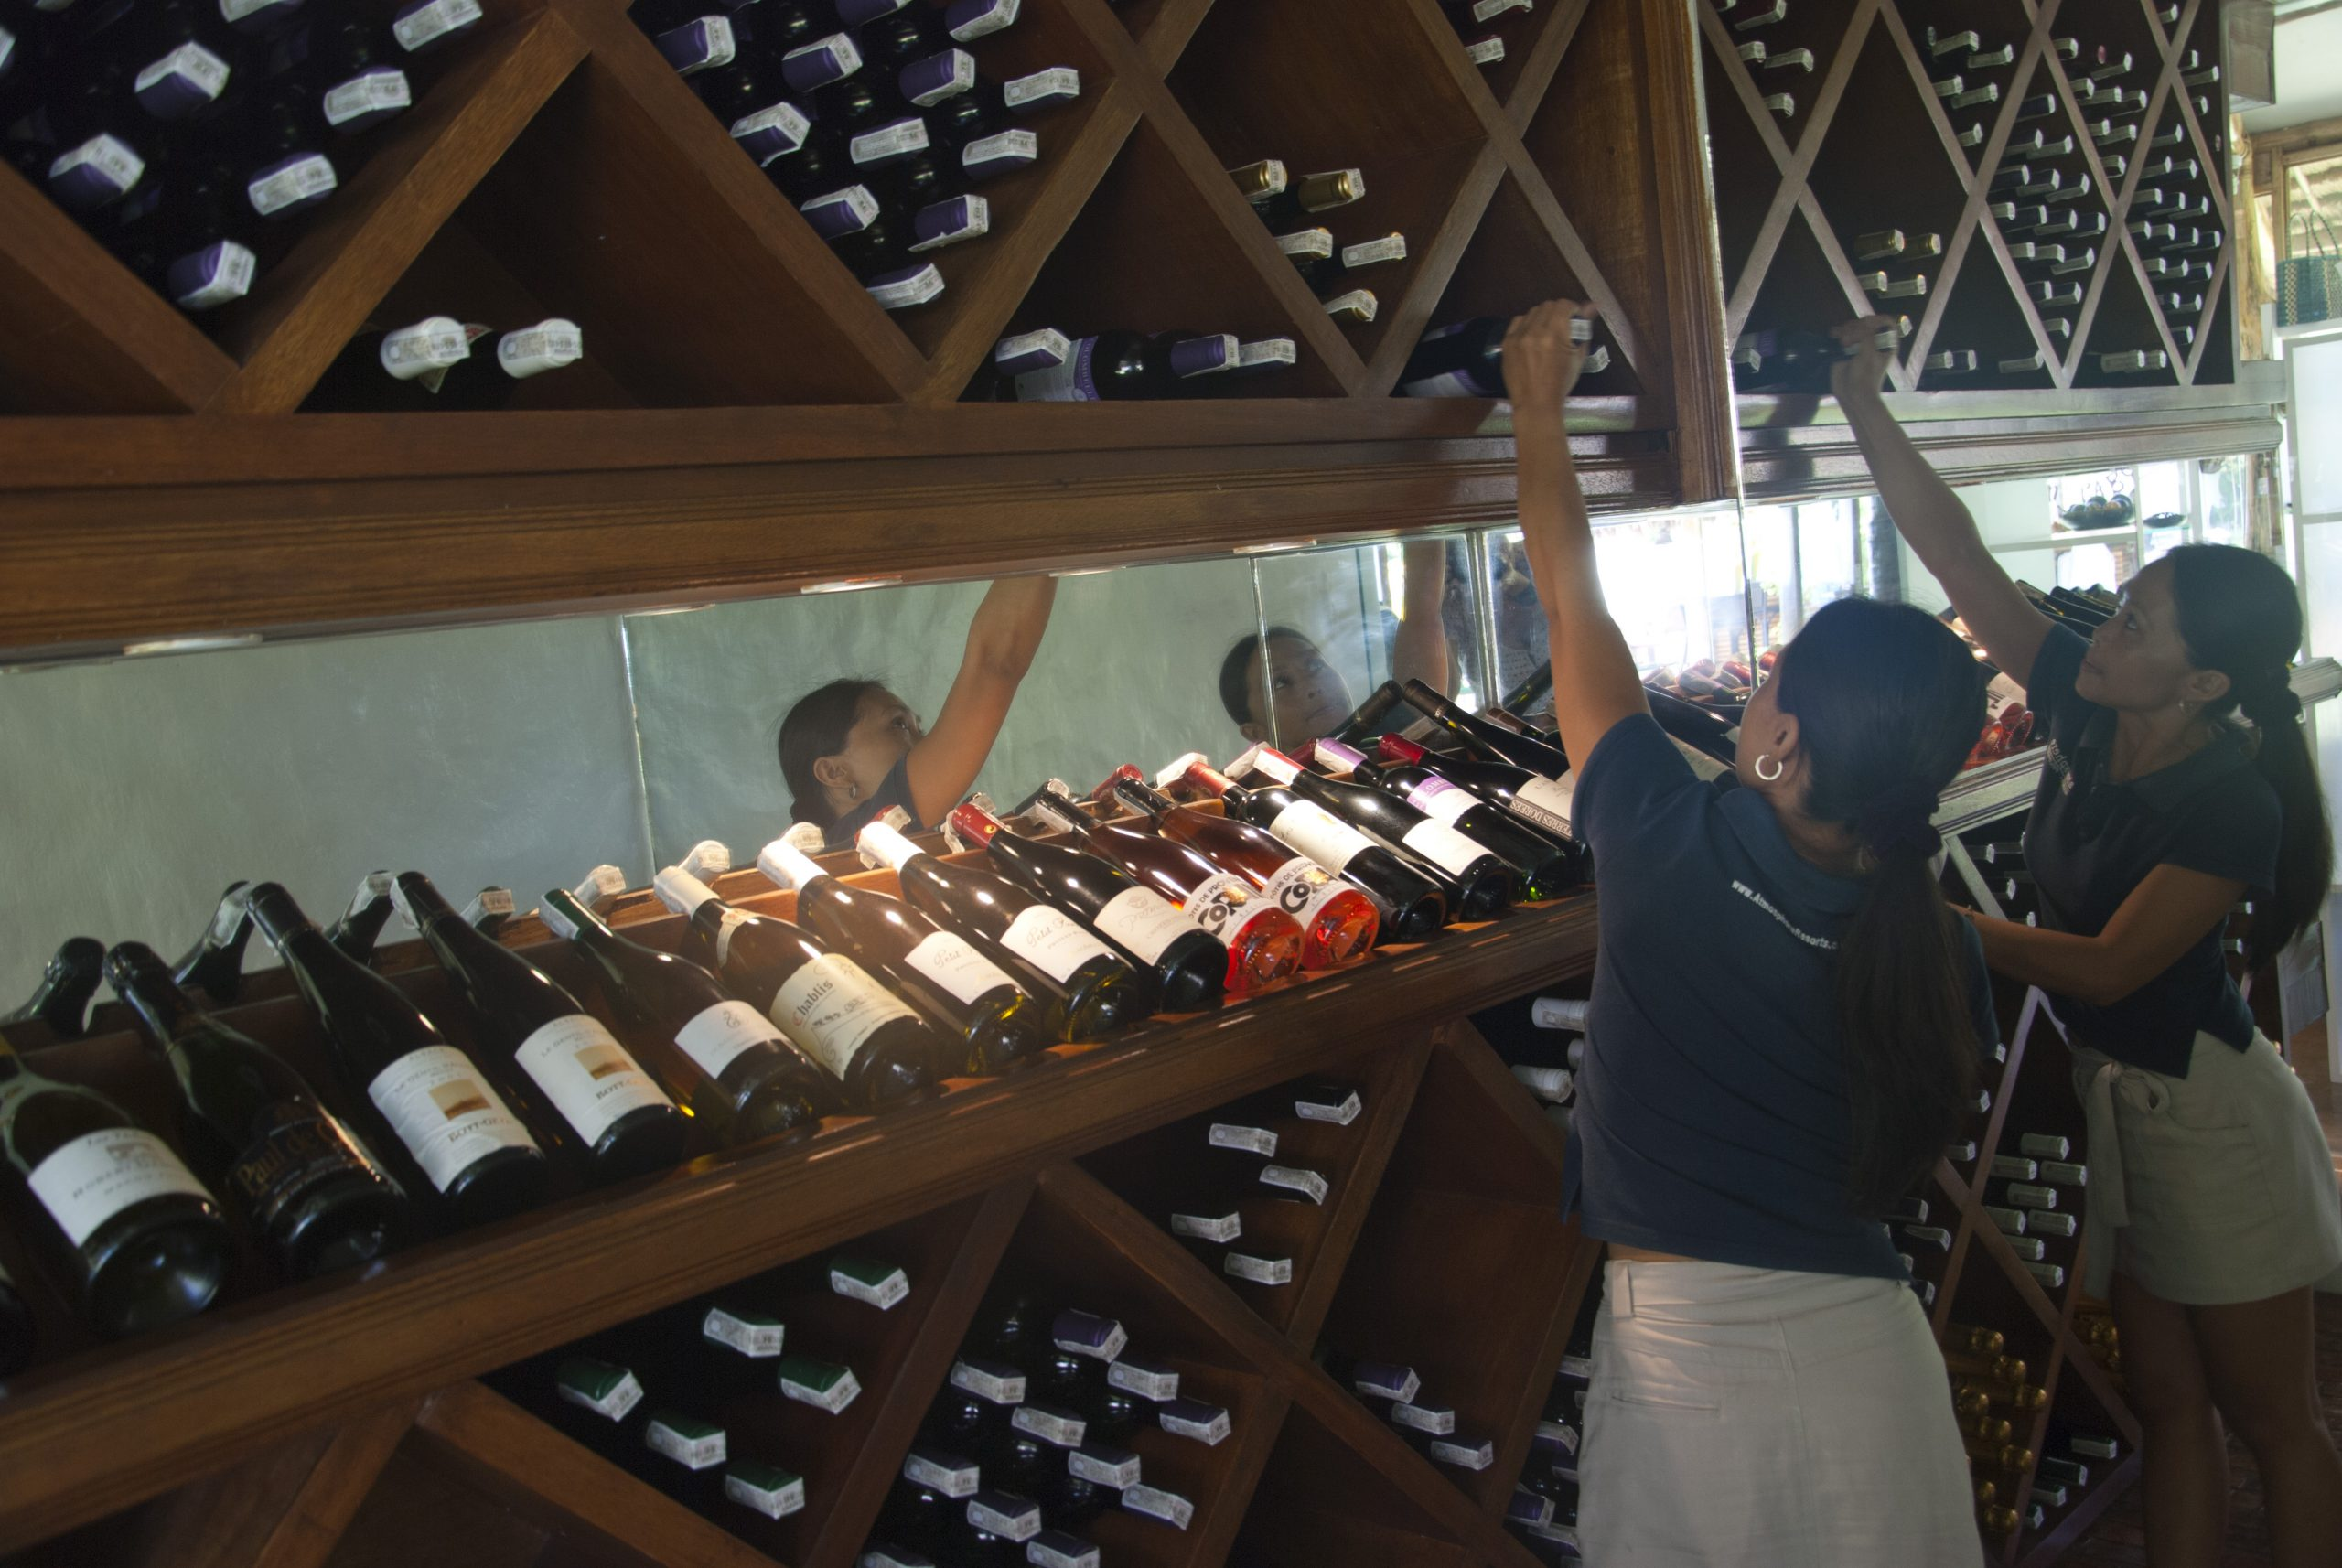 The wine cellar at Atmosphere Resorts & Spa